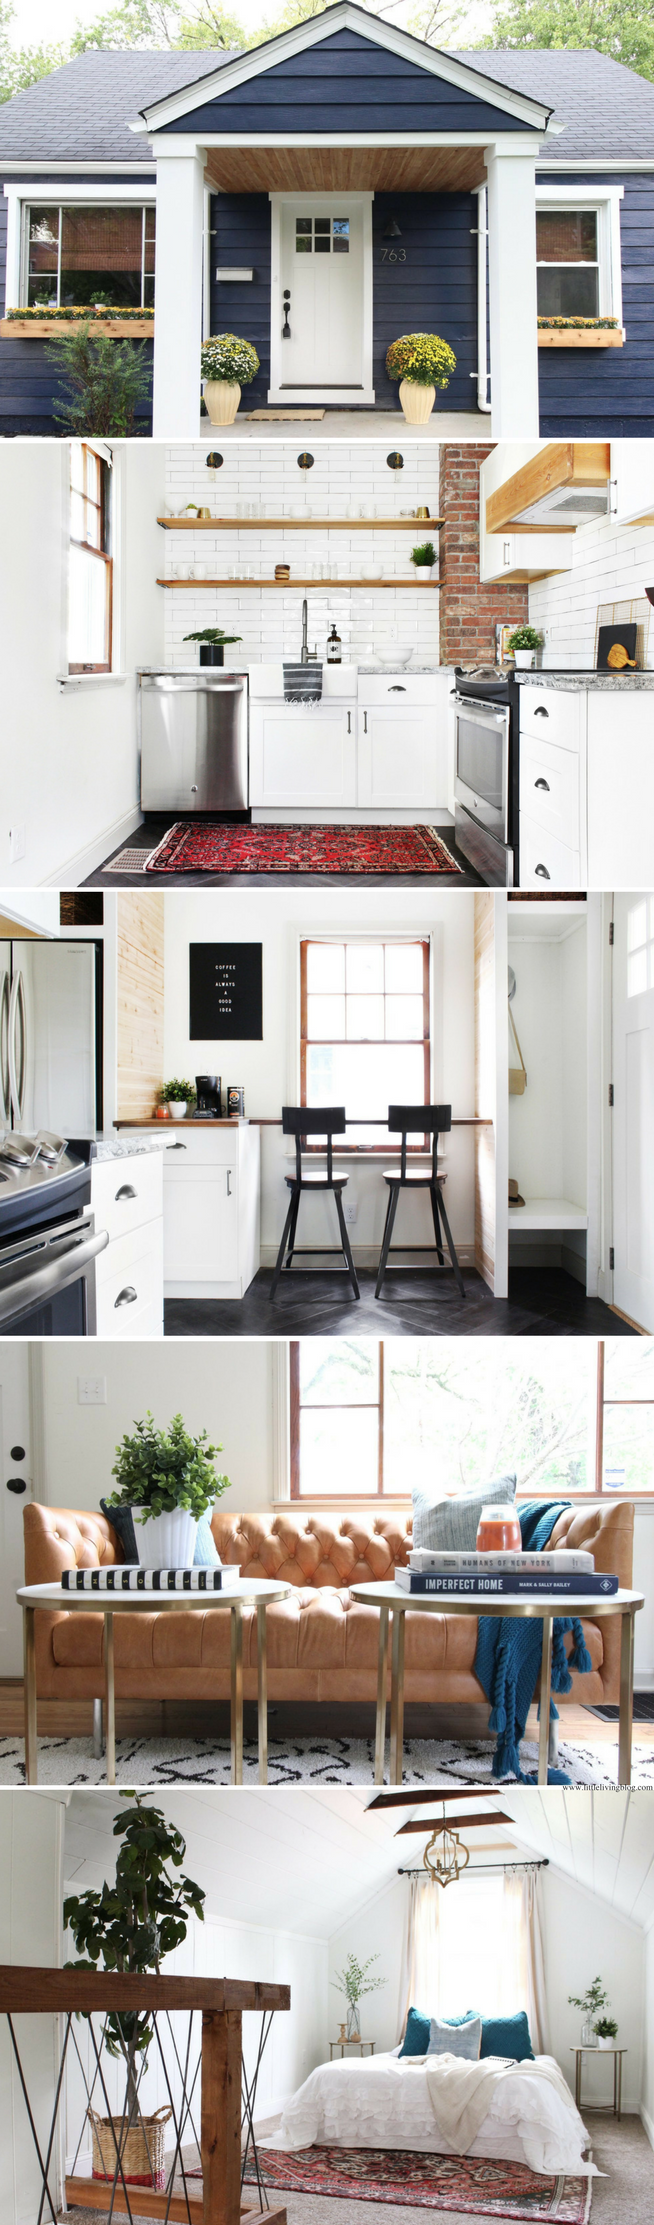 The Chesterfield Cottage (1,000 sq ft) | home | interior | Pinterest ...